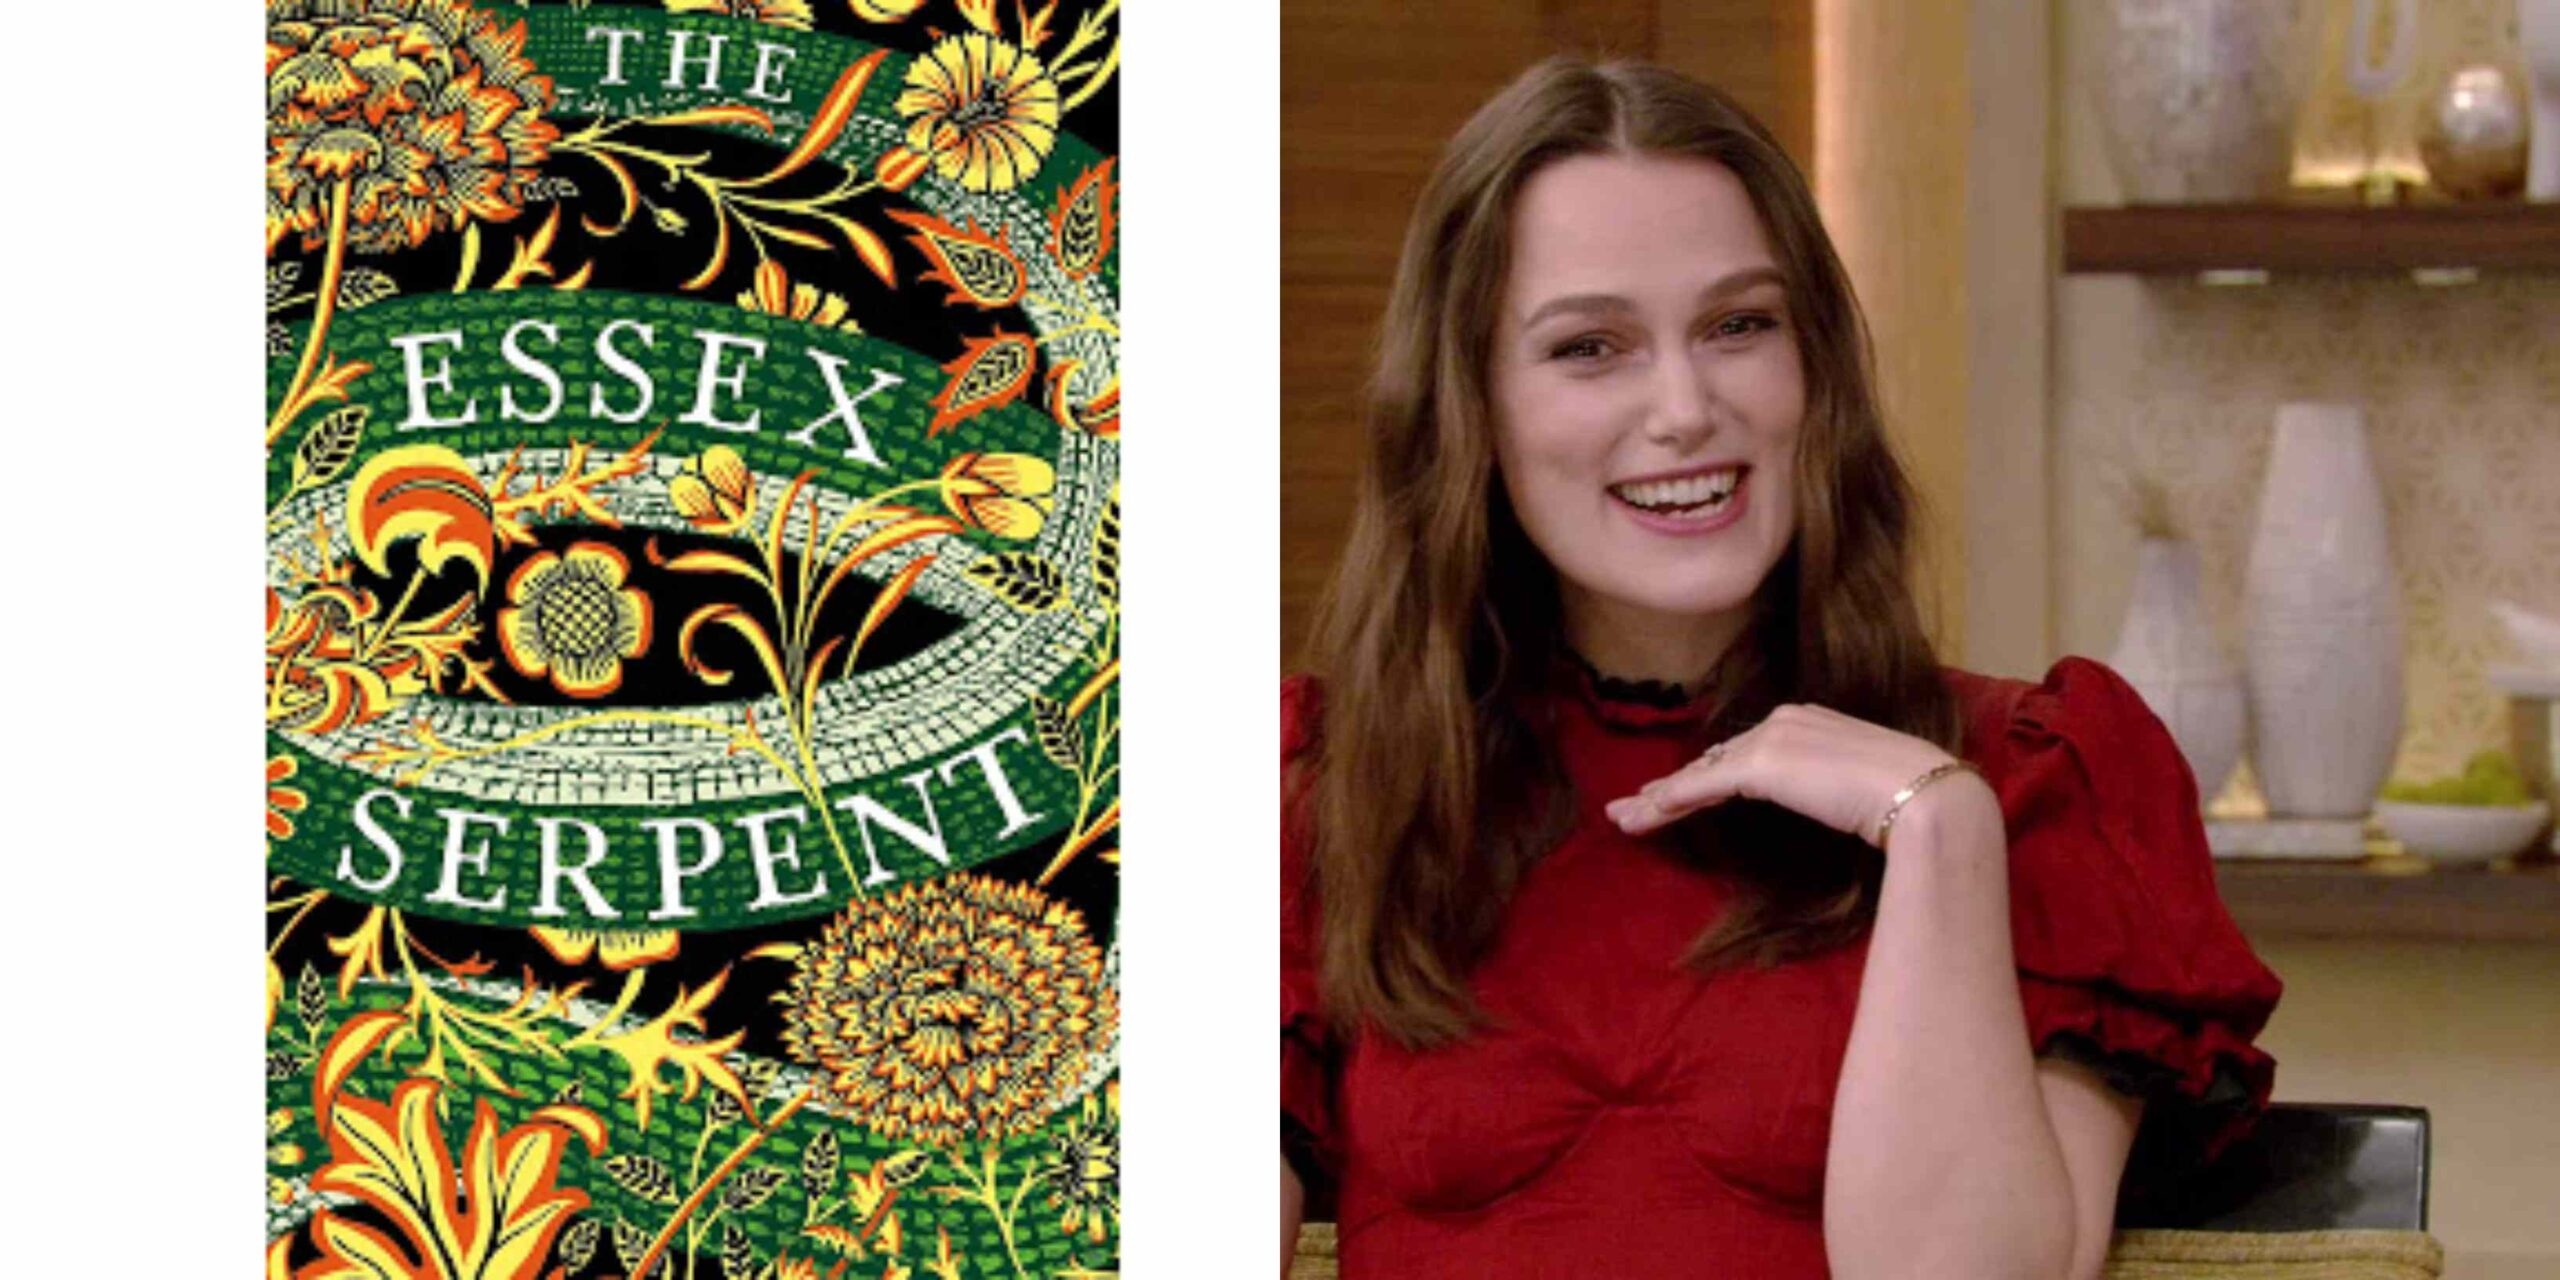 The Essex Serprent, news sulla serie TV di Keira Knightley per Apple TV+